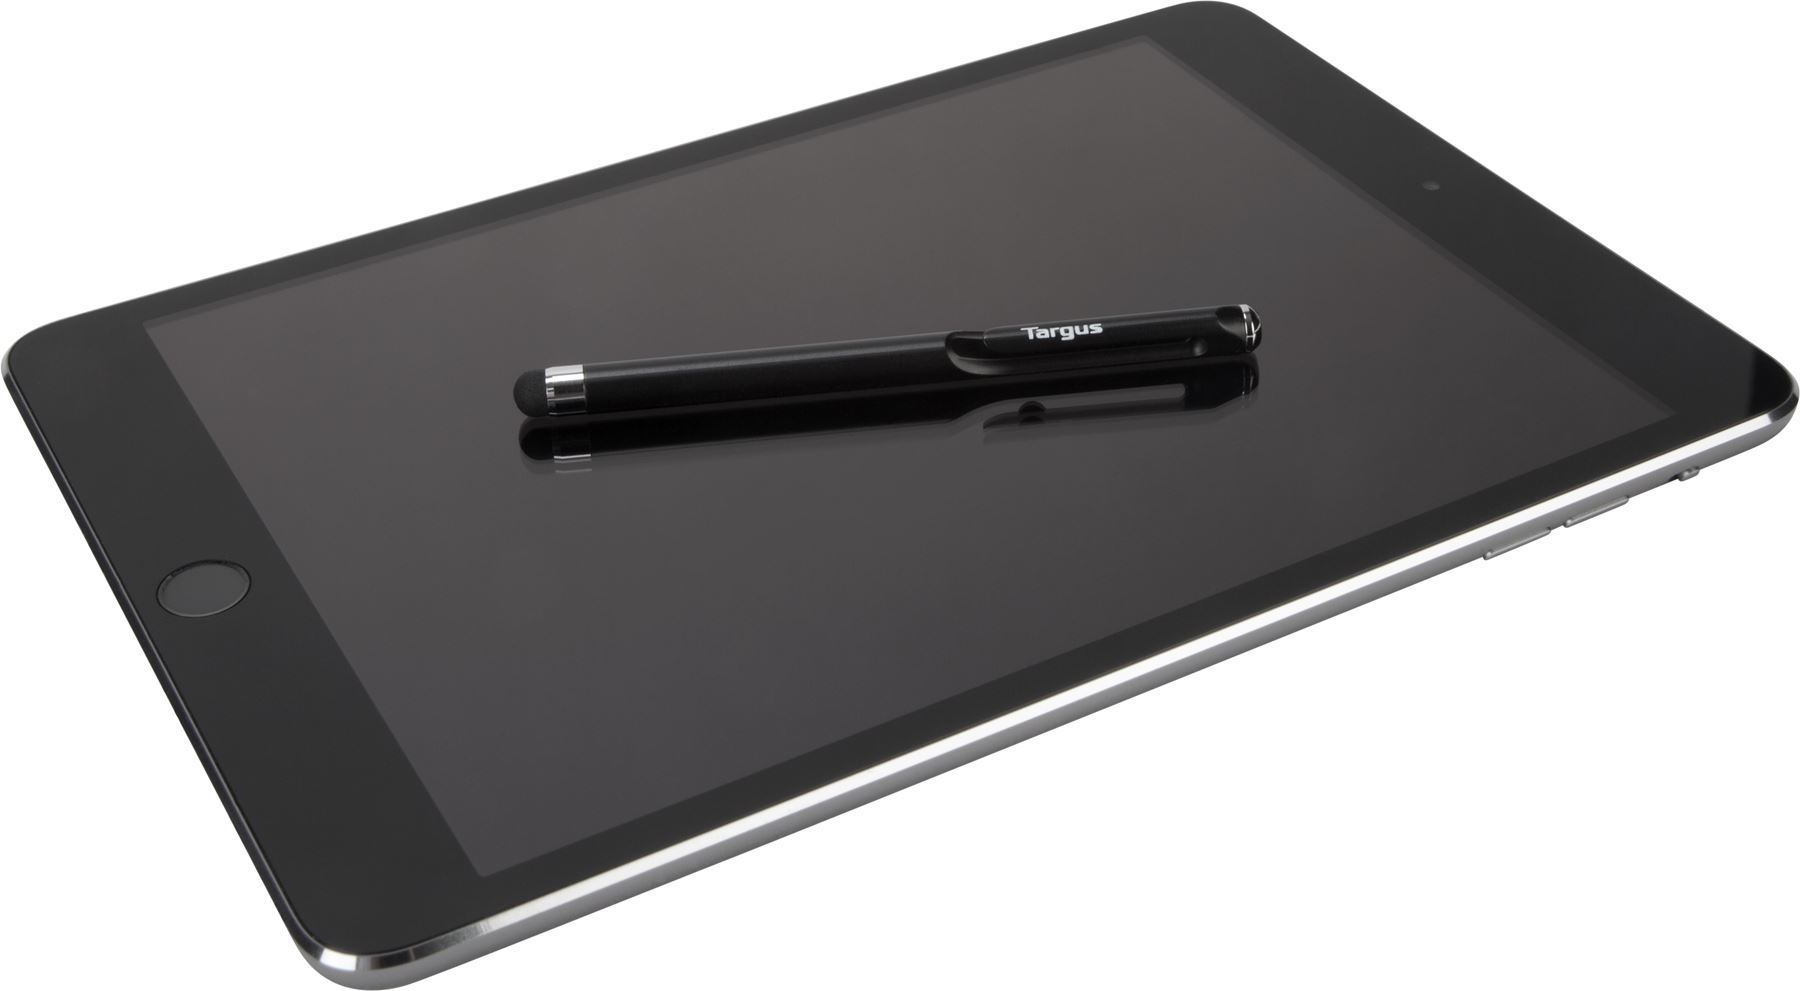 Picture of Slim Stylus with Embedded Clip - Black